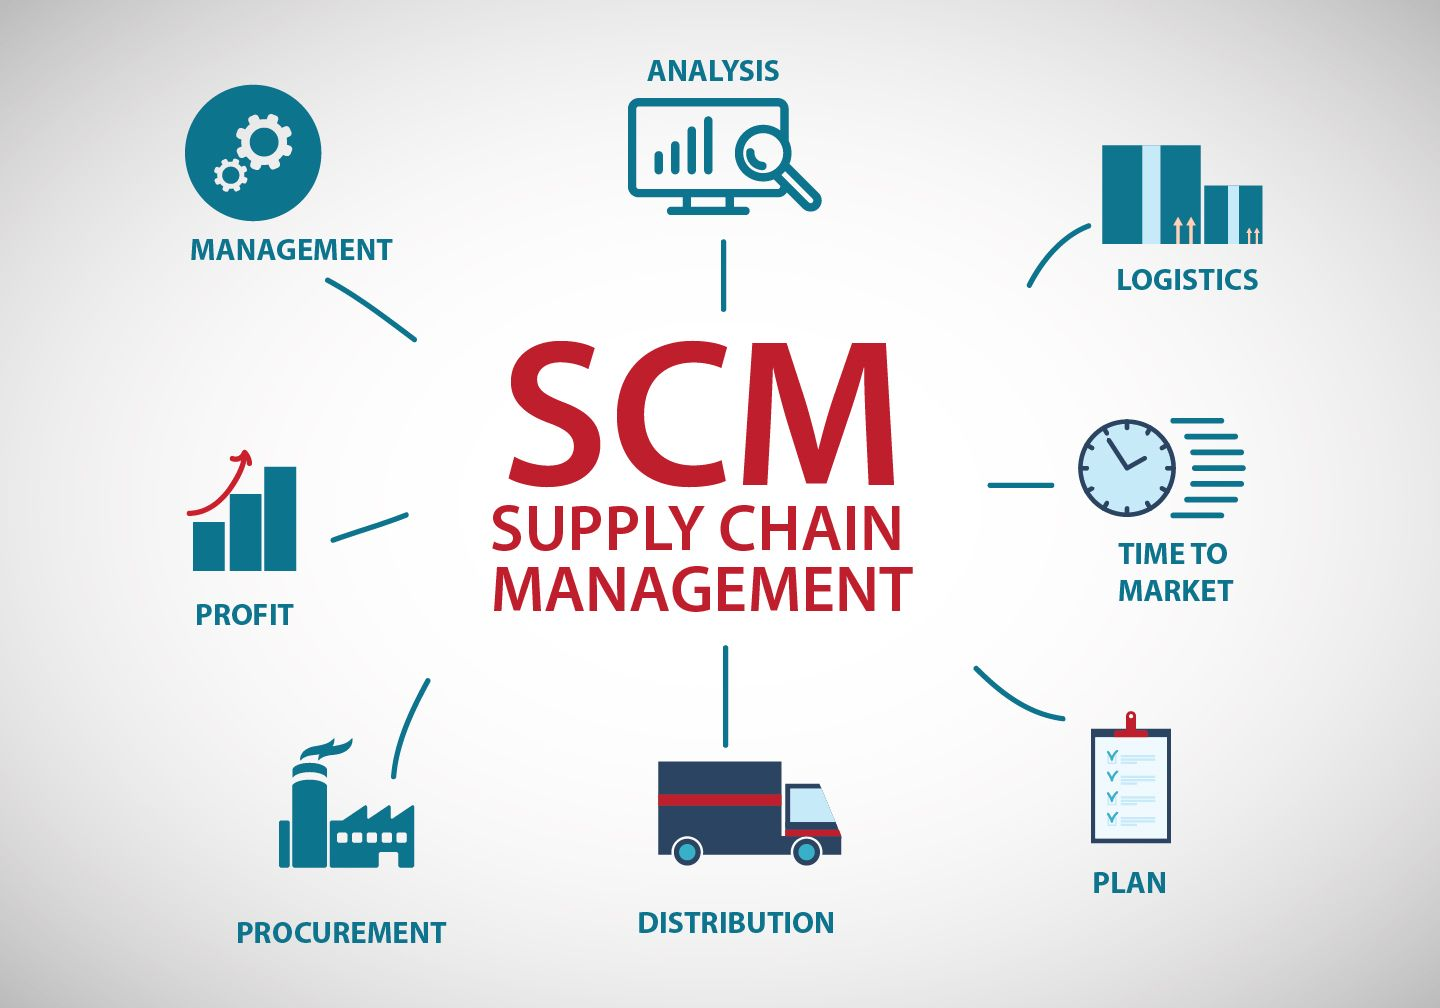 Here we have discussed about the role of supply chain management and